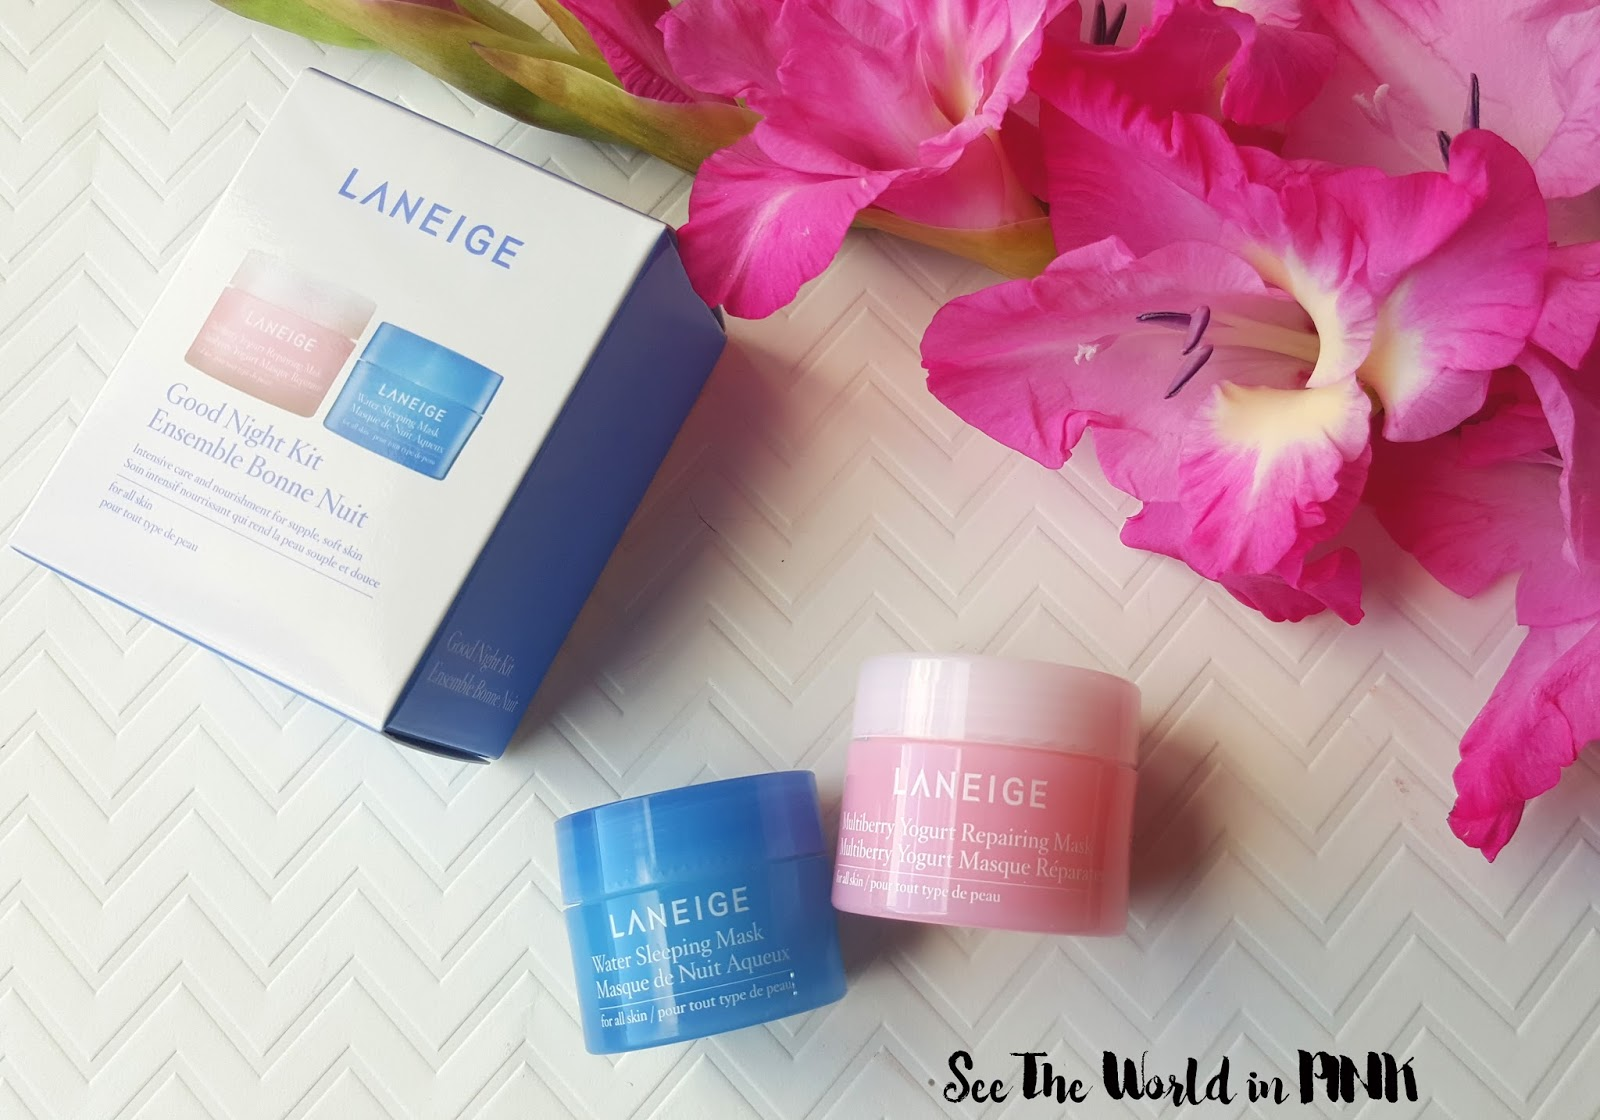 Laneige Good Night Kit & Multiberry Yogurt Repairing Mask Review.jpg